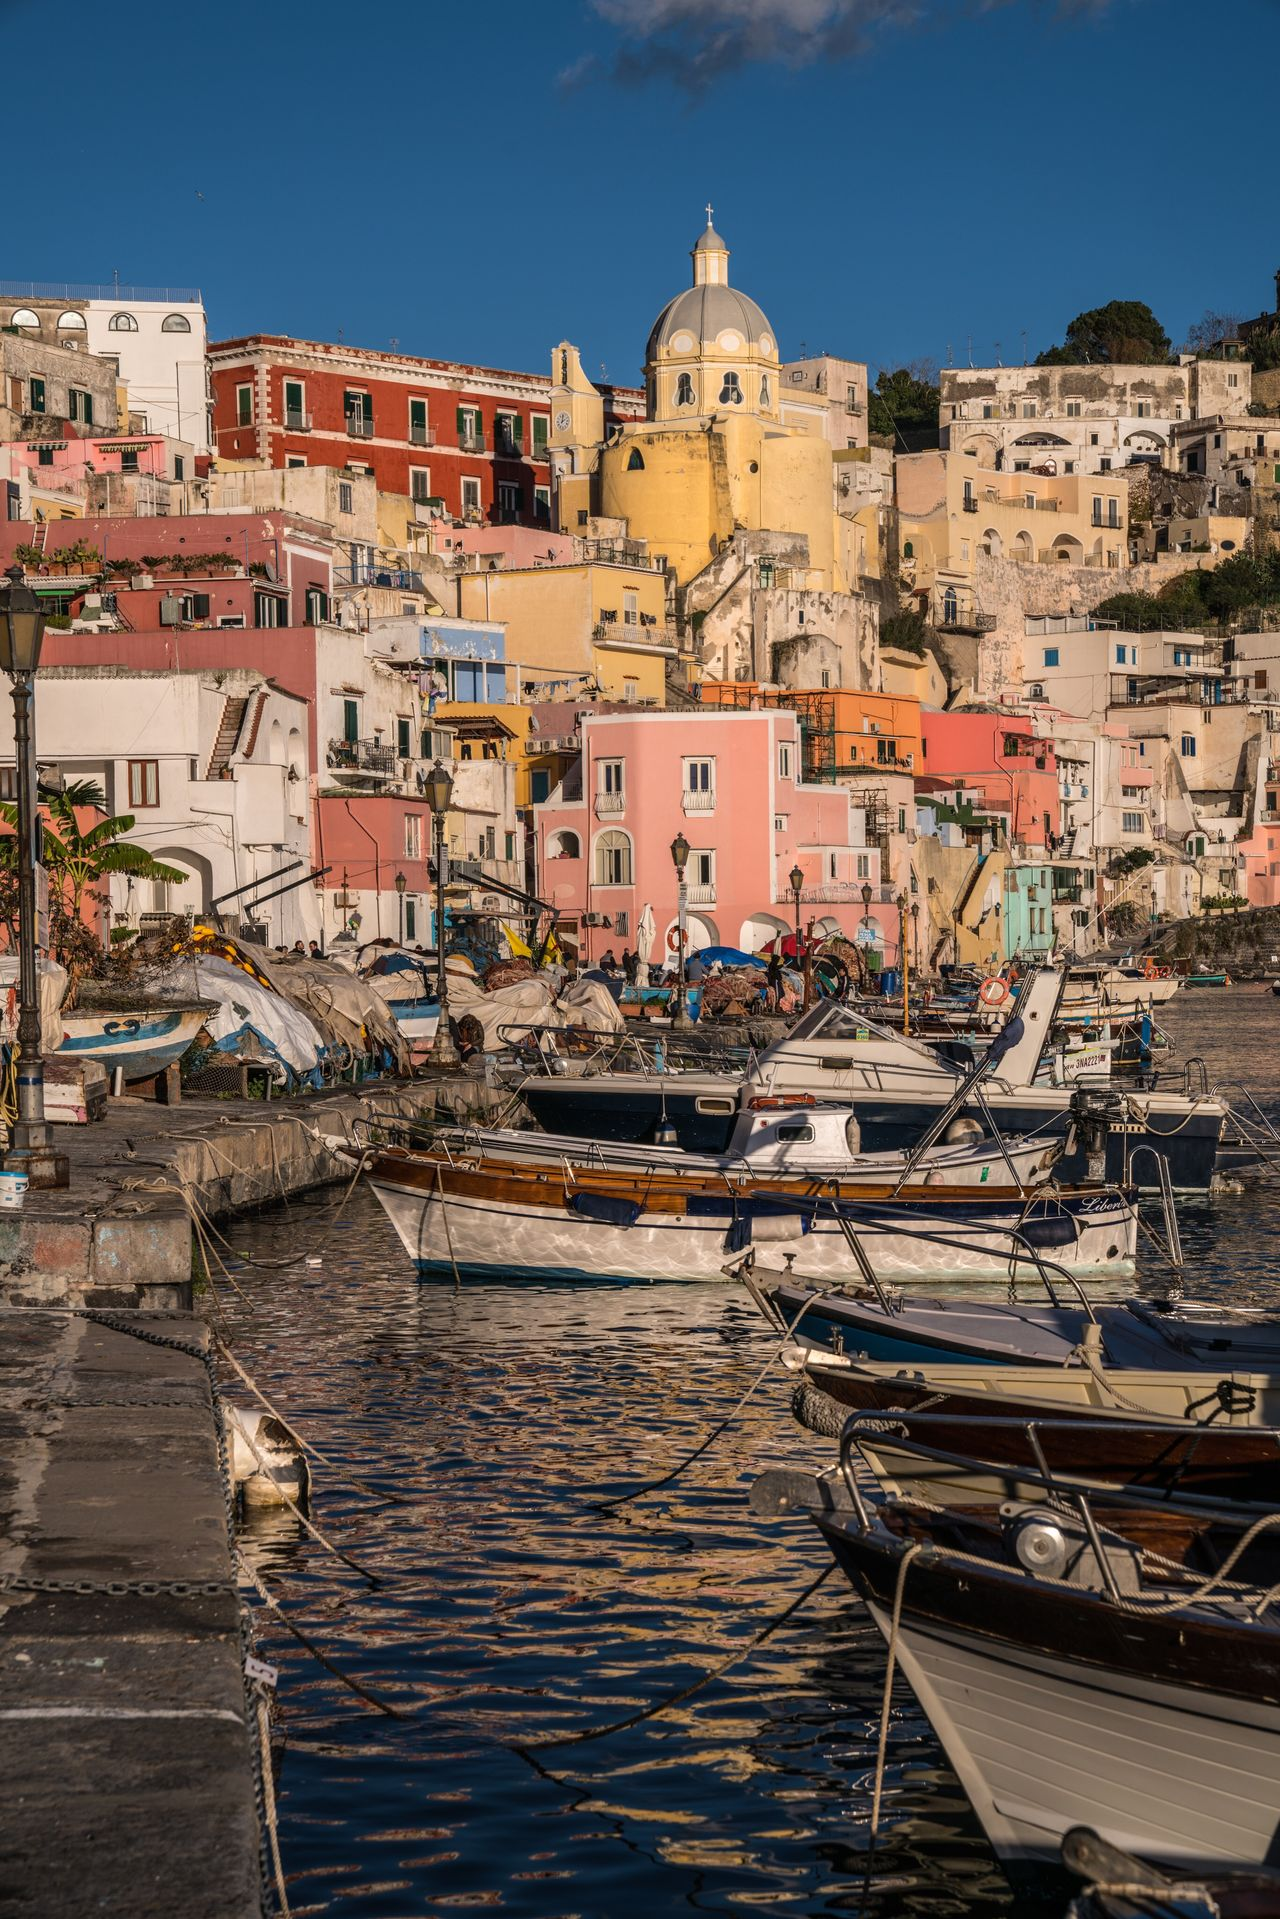 Dox. Architecture Building Exterior Built Structure Water Travel Destinations Nautical Vessel Religion Sky Outdoors Cityscape Day Napoli Naples Italy❤️ Italia Italy Bella Italia Procida Island Harbor Harbour Docks Colors Colorful Architecture